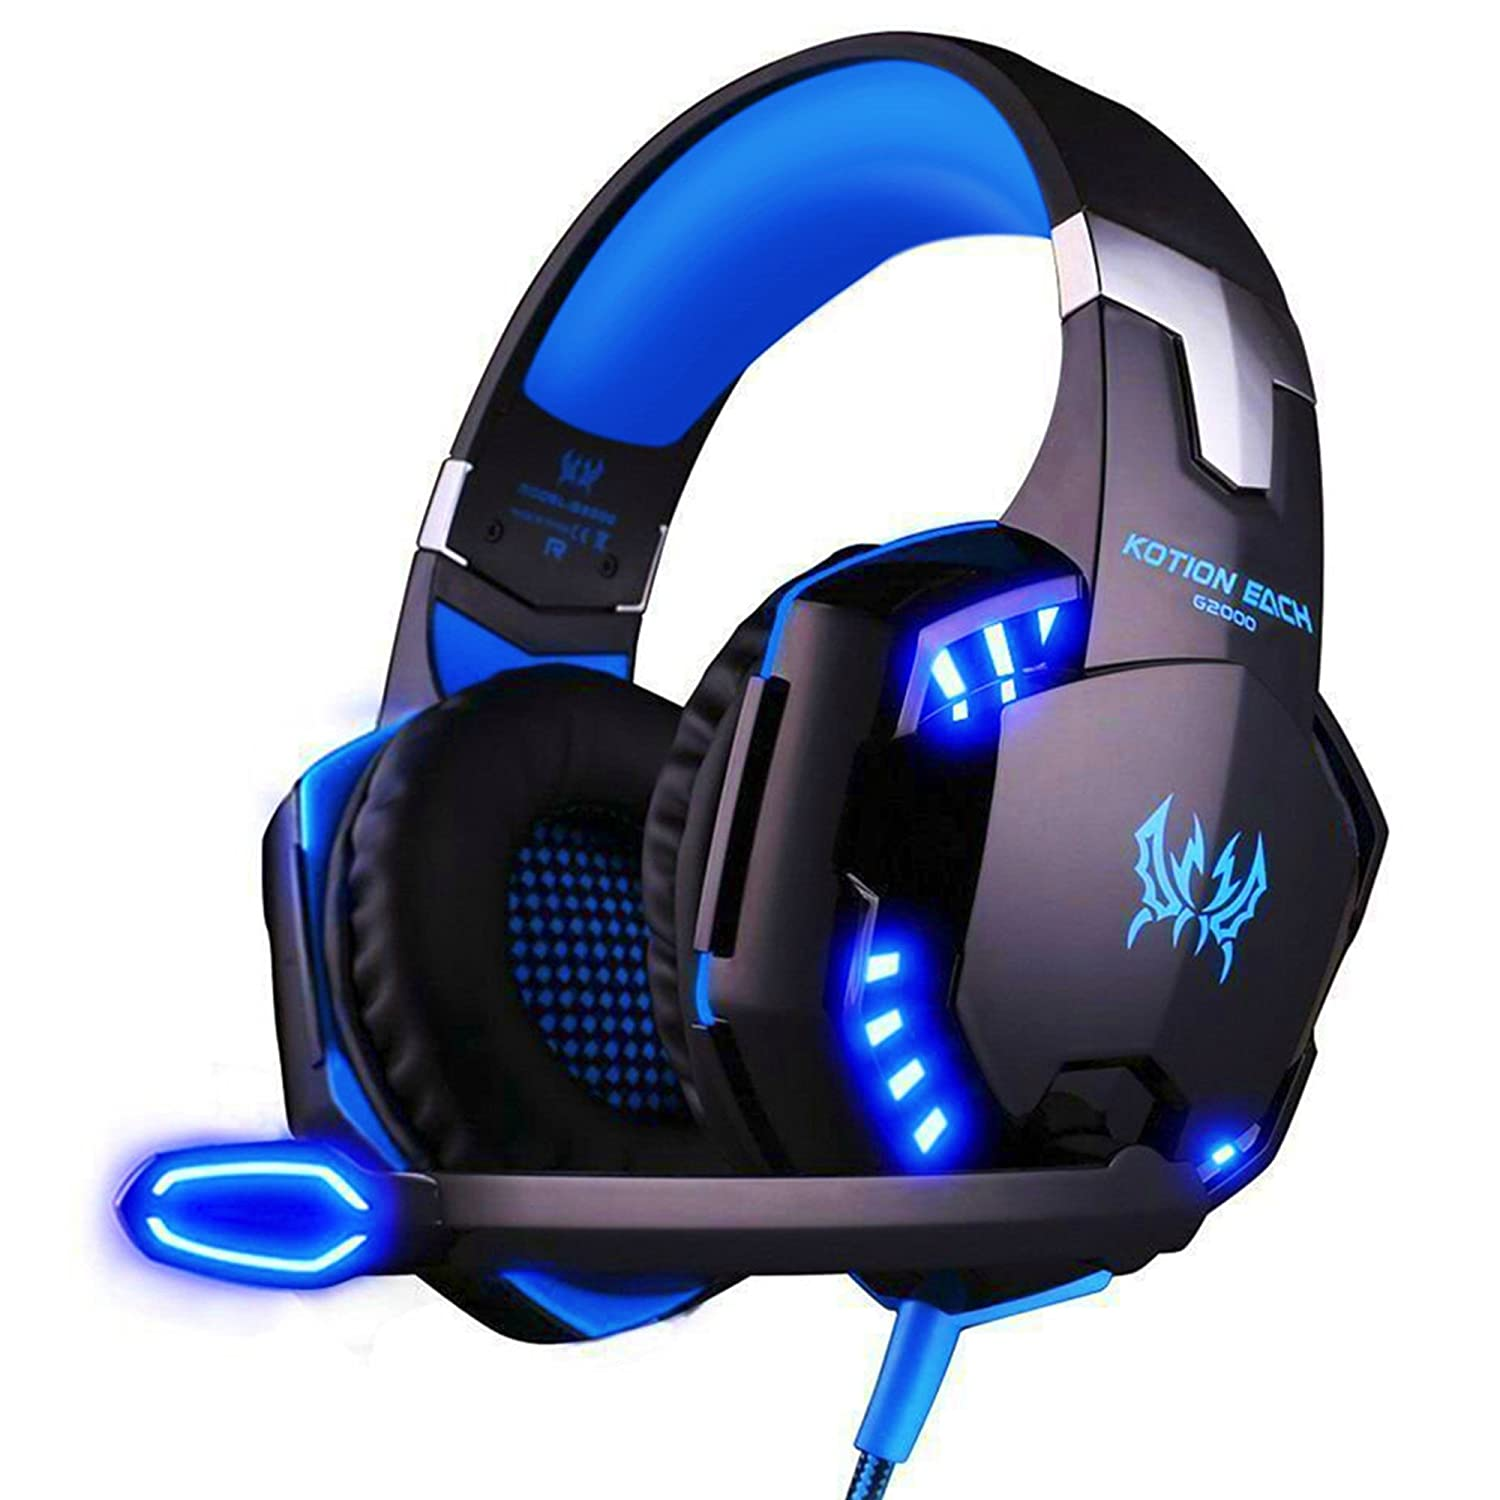 casque gaming micro arkartech g2000 casque filaire pc microphone headset ebay. Black Bedroom Furniture Sets. Home Design Ideas